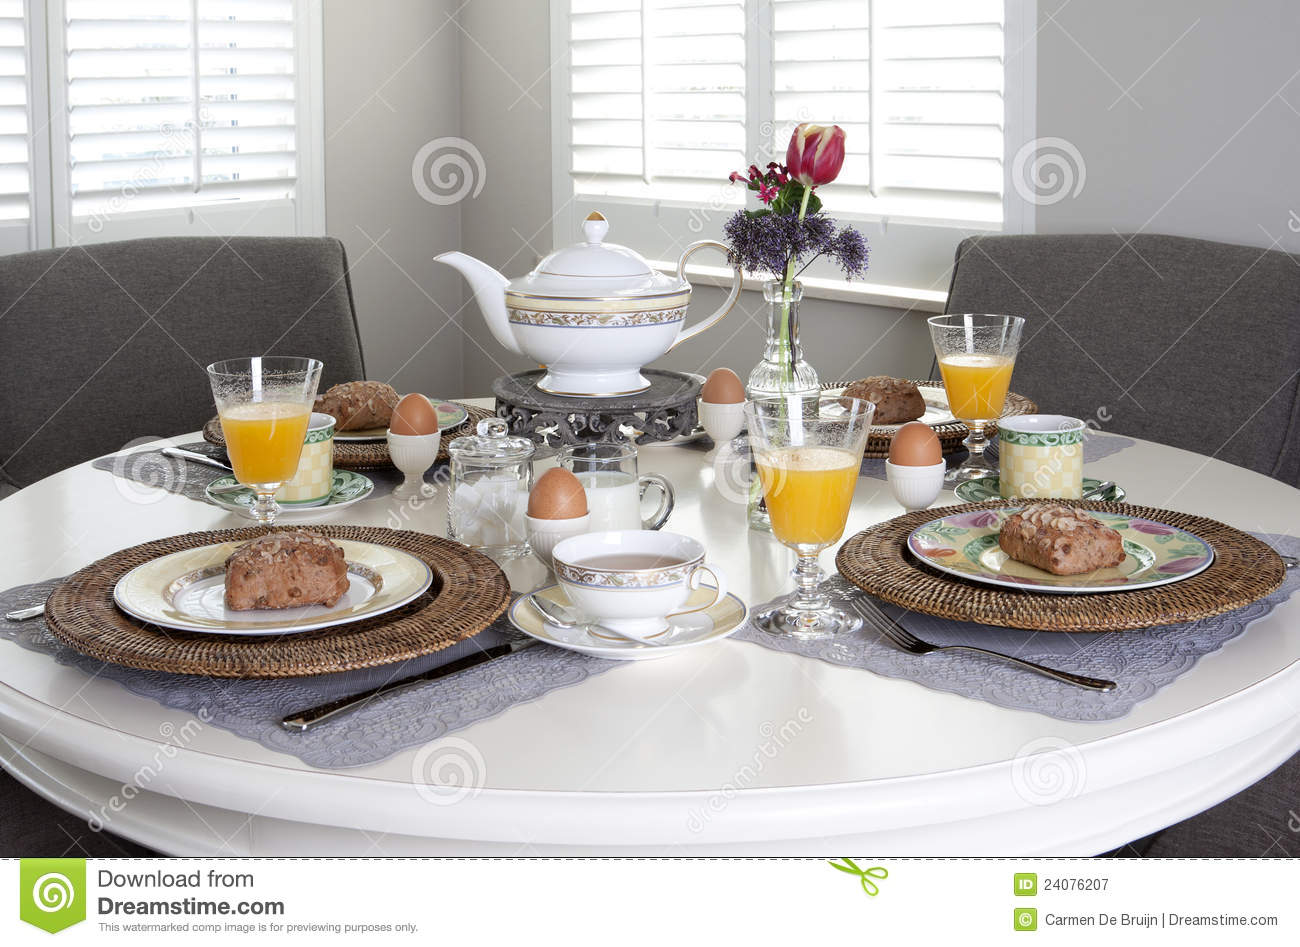 home interior design vector with Royalty Free Stock Photography Dining Table Laid Breakfast Image24076207 on Royalty Free Stock Photos Drawing Room Image13511178 additionally Creative Wallpapers additionally Vector Window Pink Shutters Transparent Curtains 627444149 moreover 3710 0 furthermore Stock Images Kitchen Stone Fireplace Image13028824.